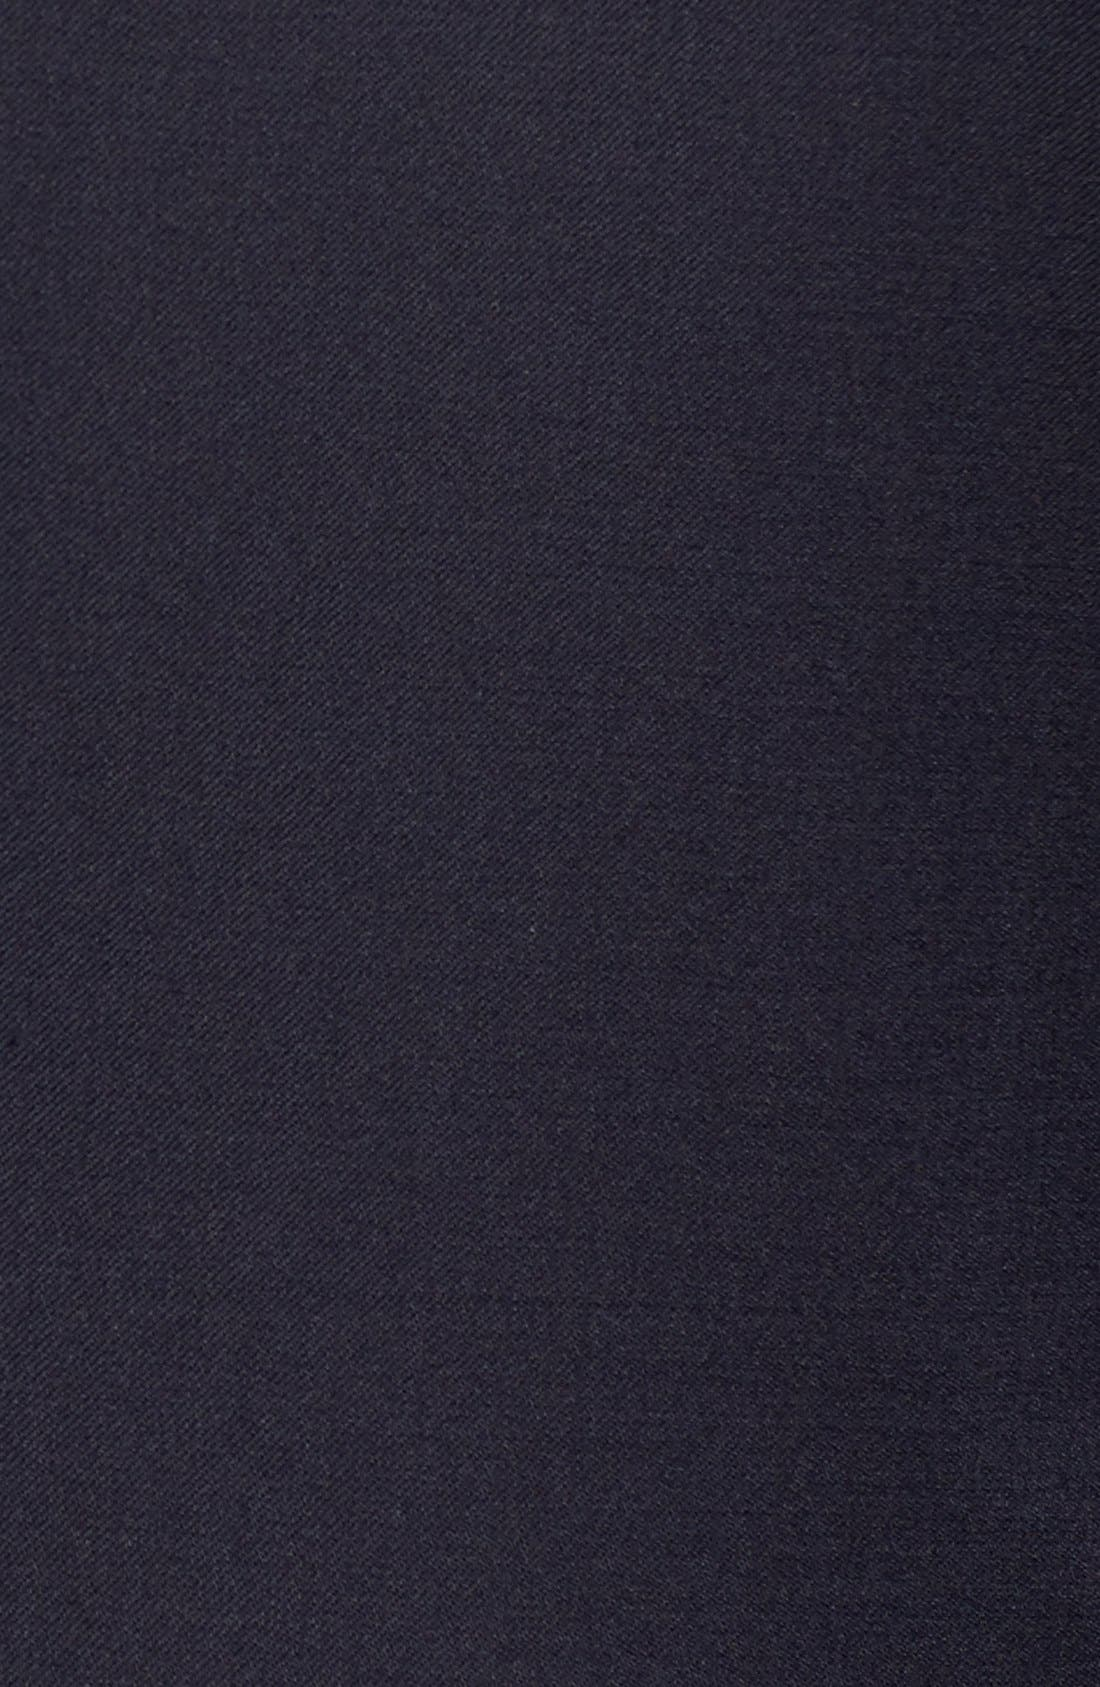 Ryan/Win Extra Trim Fit Solid Wool Suit,                             Alternate thumbnail 5, color,                             DARK BLUE